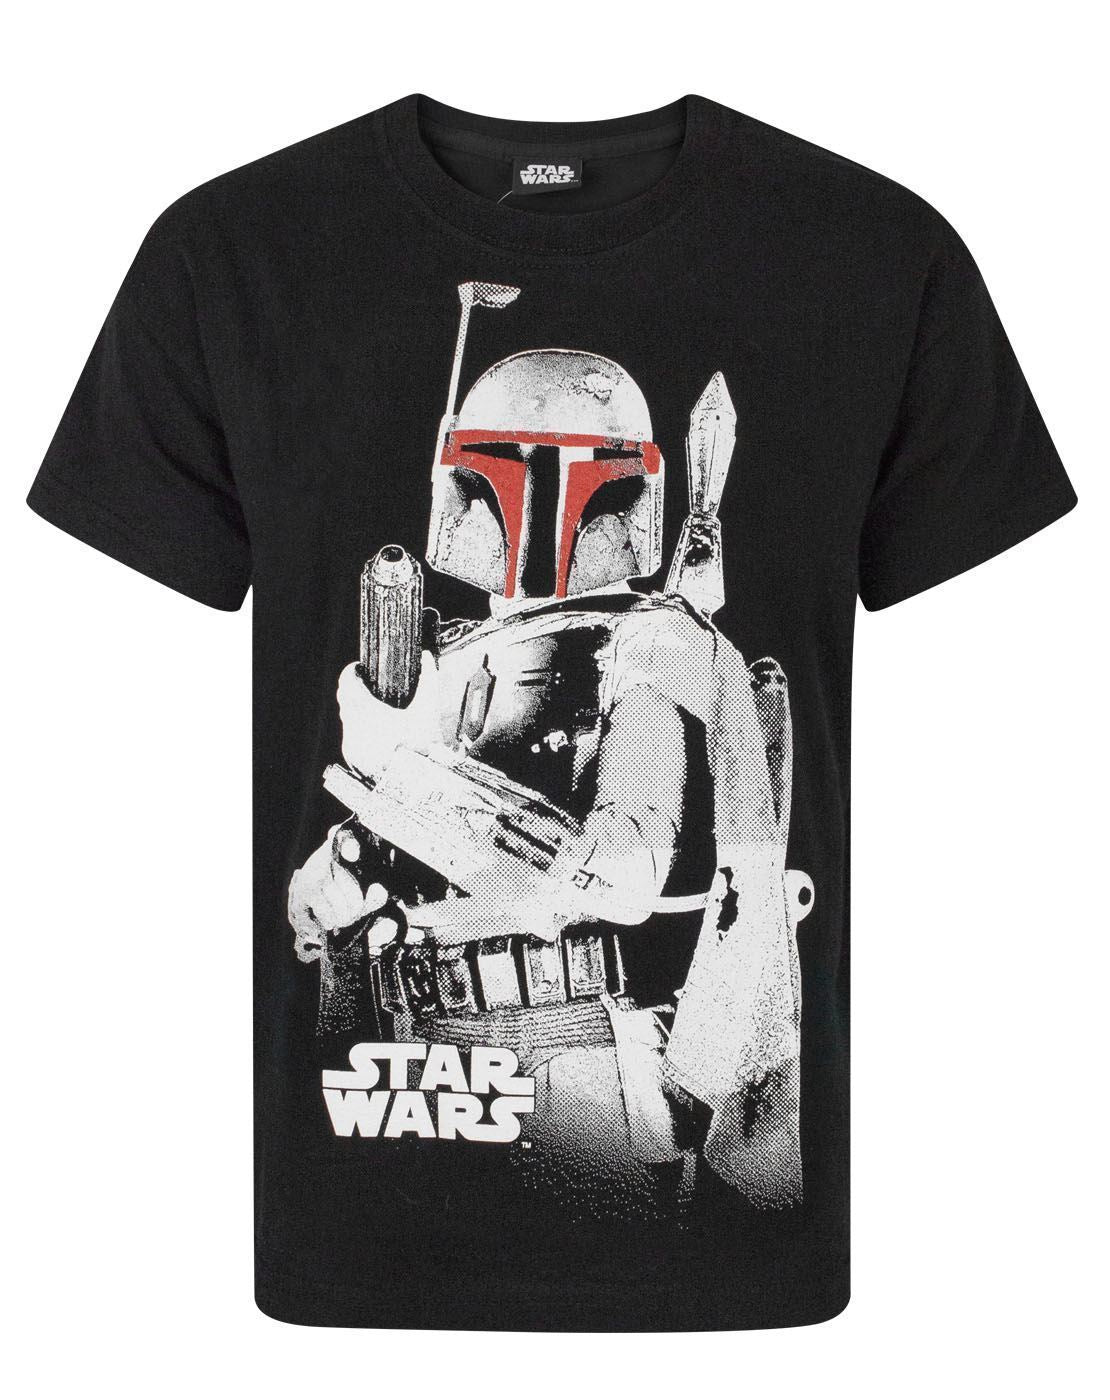 fbb909d8dd Star Wars Boba Fett Bounty Hunter Boy's T-Shirt | Noisy Sauce Live